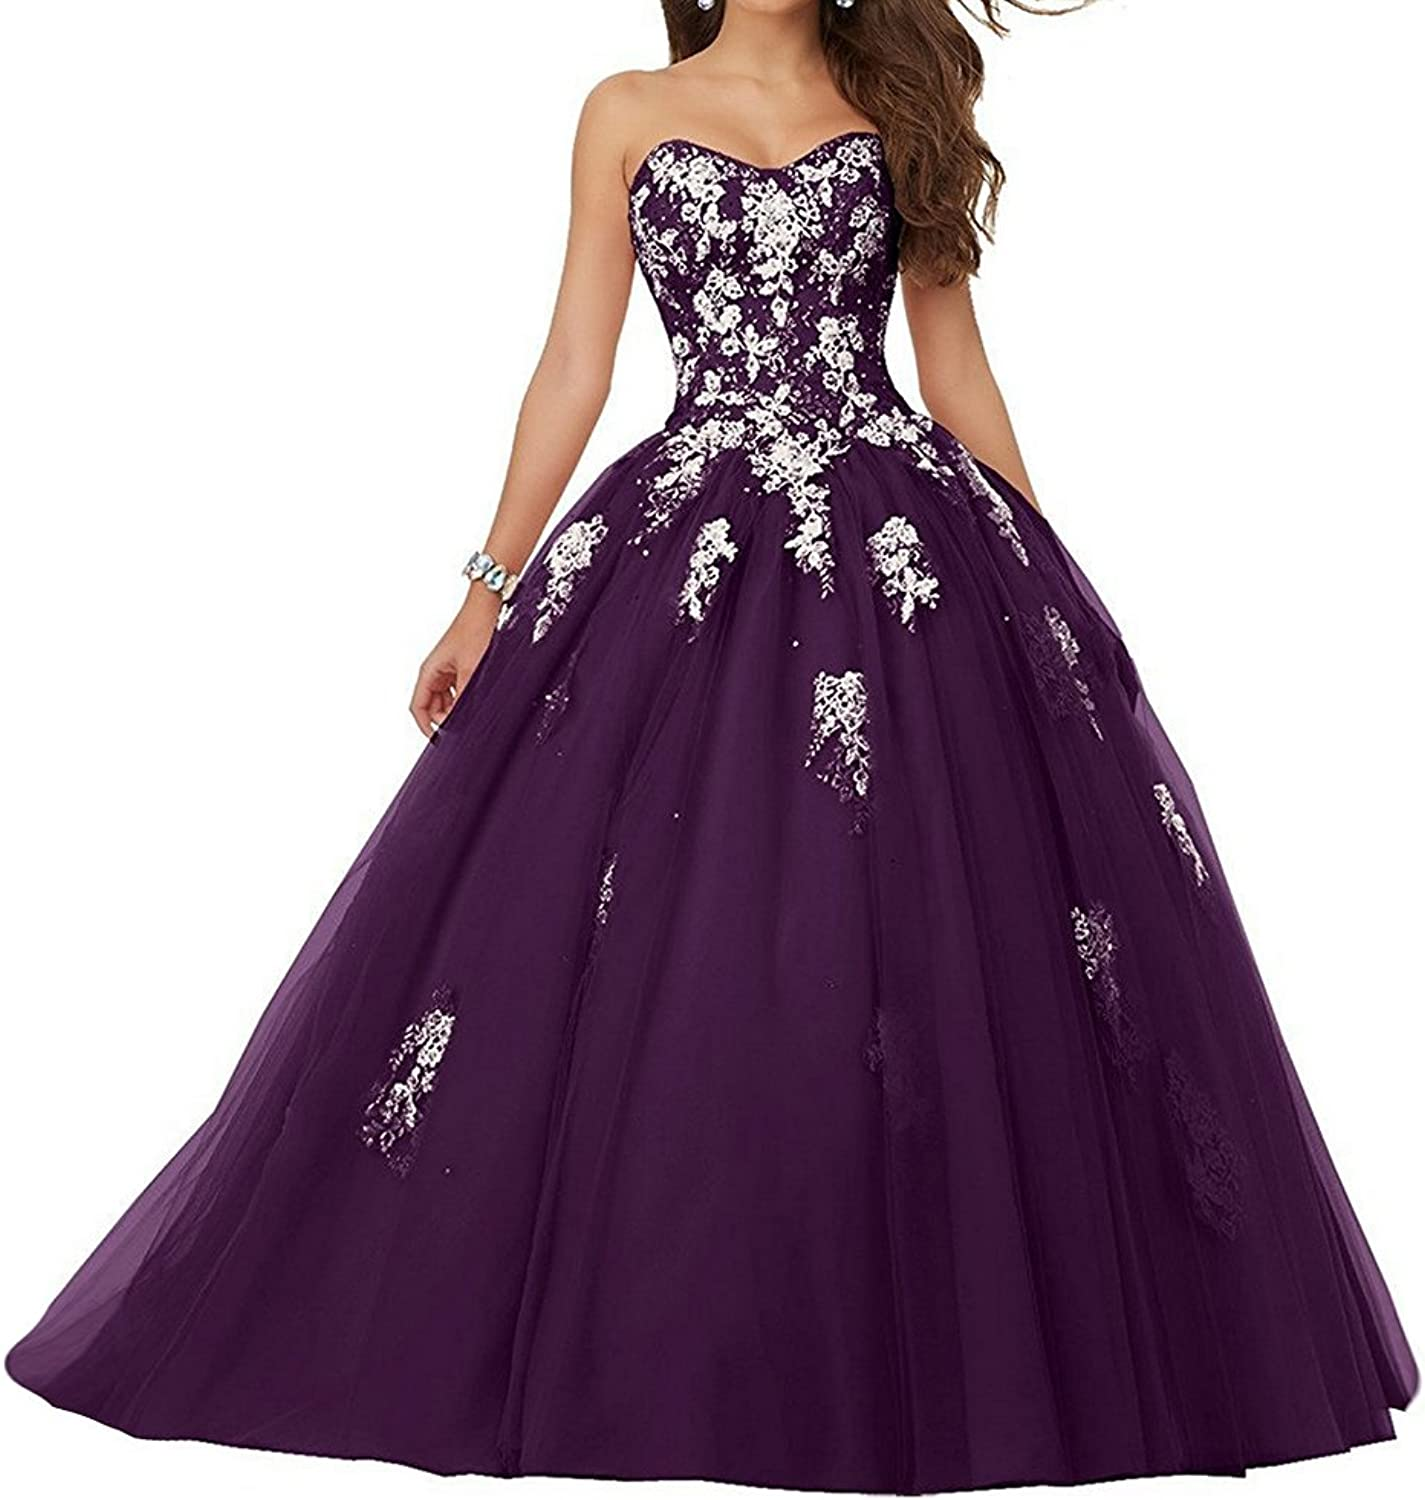 JAEDEN Prom Dress Ball Gown Quinceanera Dresses Lace Appliques Prom Gown Strapless Quinceanera Gown